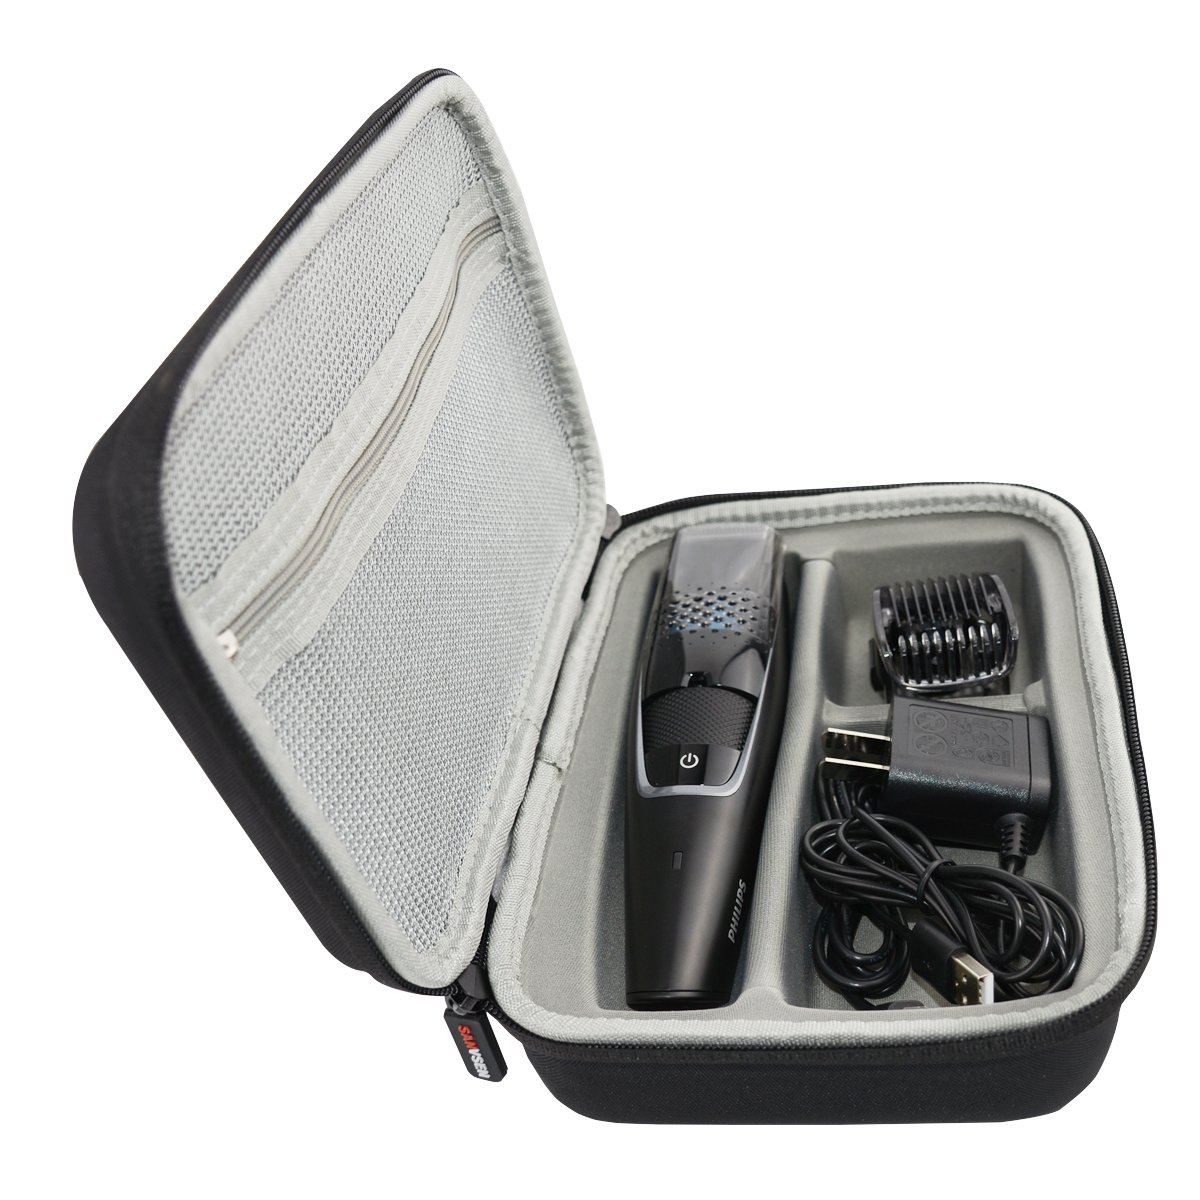 Hard Case for Philips Norelco Series 3000 MG3750 by SANVSEN